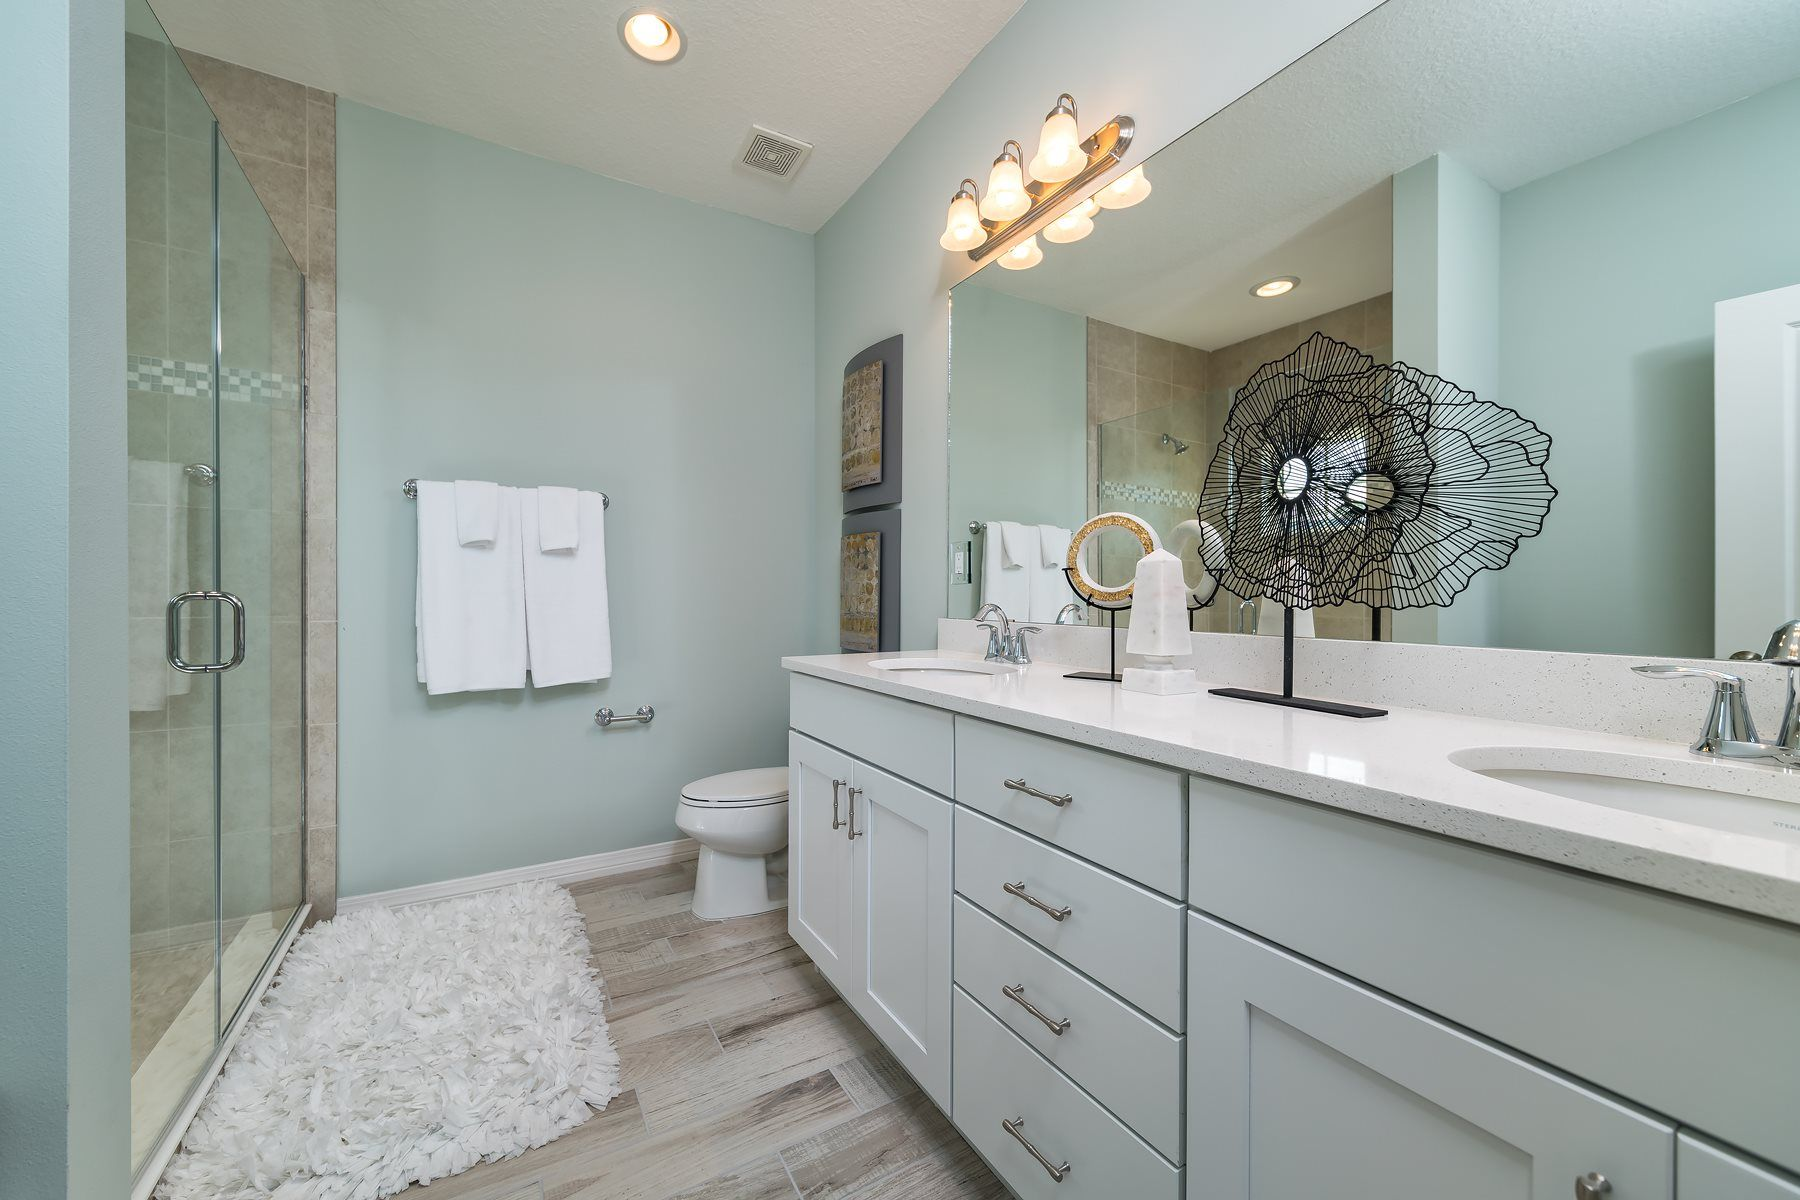 Bathroom featured in the 2BR Townhome By Lennar in Pensacola, FL